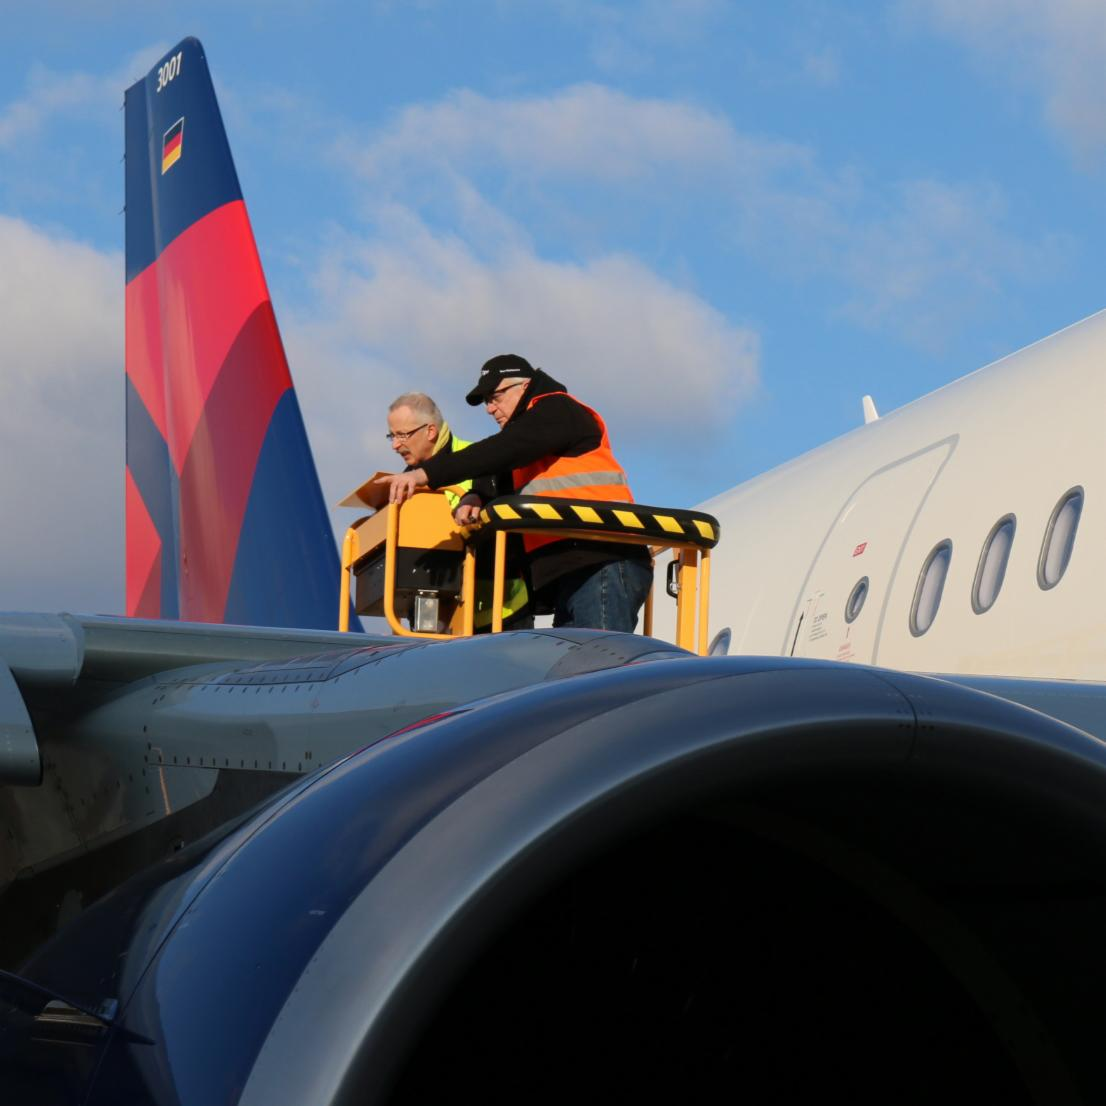 Meet the team of @Delta delivery experts who make sure the DeltaA321 is perfect